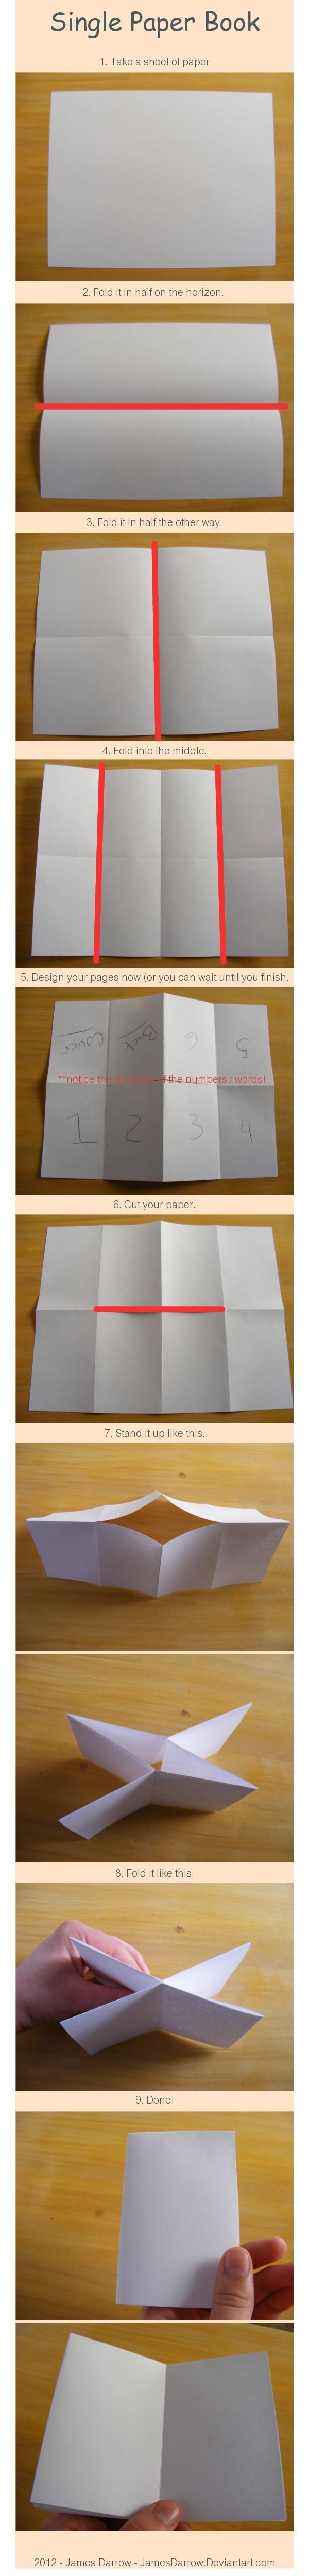 Single Paper Book by JamesDarrow.deviantart.com    Seriously I will be doing this! Cant tell you how many papers I have taped and folded to make books for Camden!